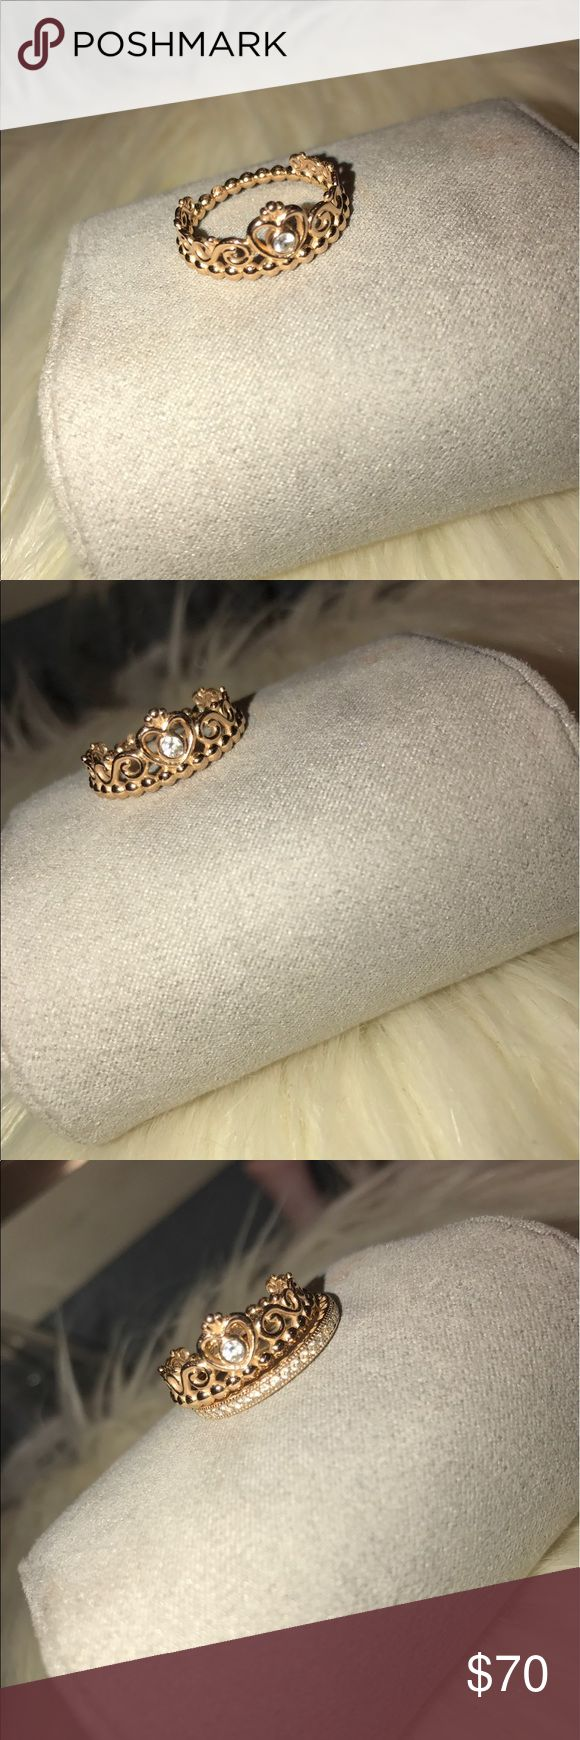 My Princess Tiara Ring, PANDORA Rose™ Rose gold princess ring, when I bought it, I got it with the ring in the last picture that's why I included that picture. I don't think it looks complete without it, but I can sell them separately Pandora Jewelry Rings